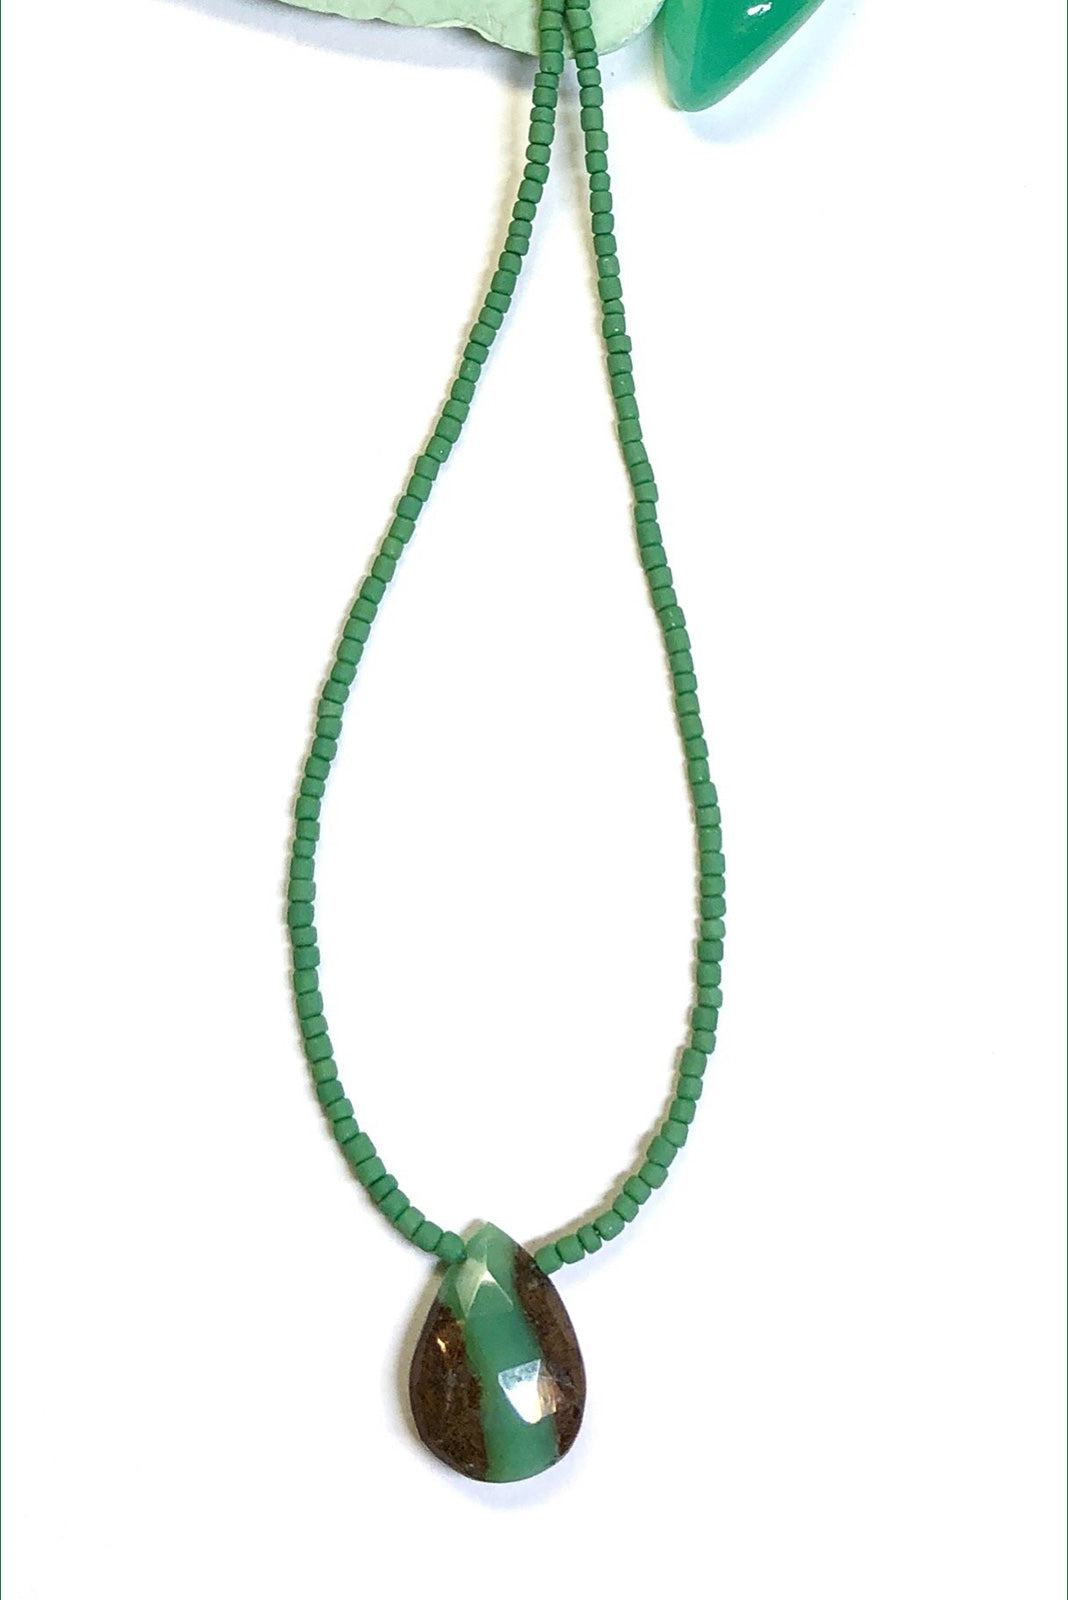 Necklace Cay Chrysoprase Pendant